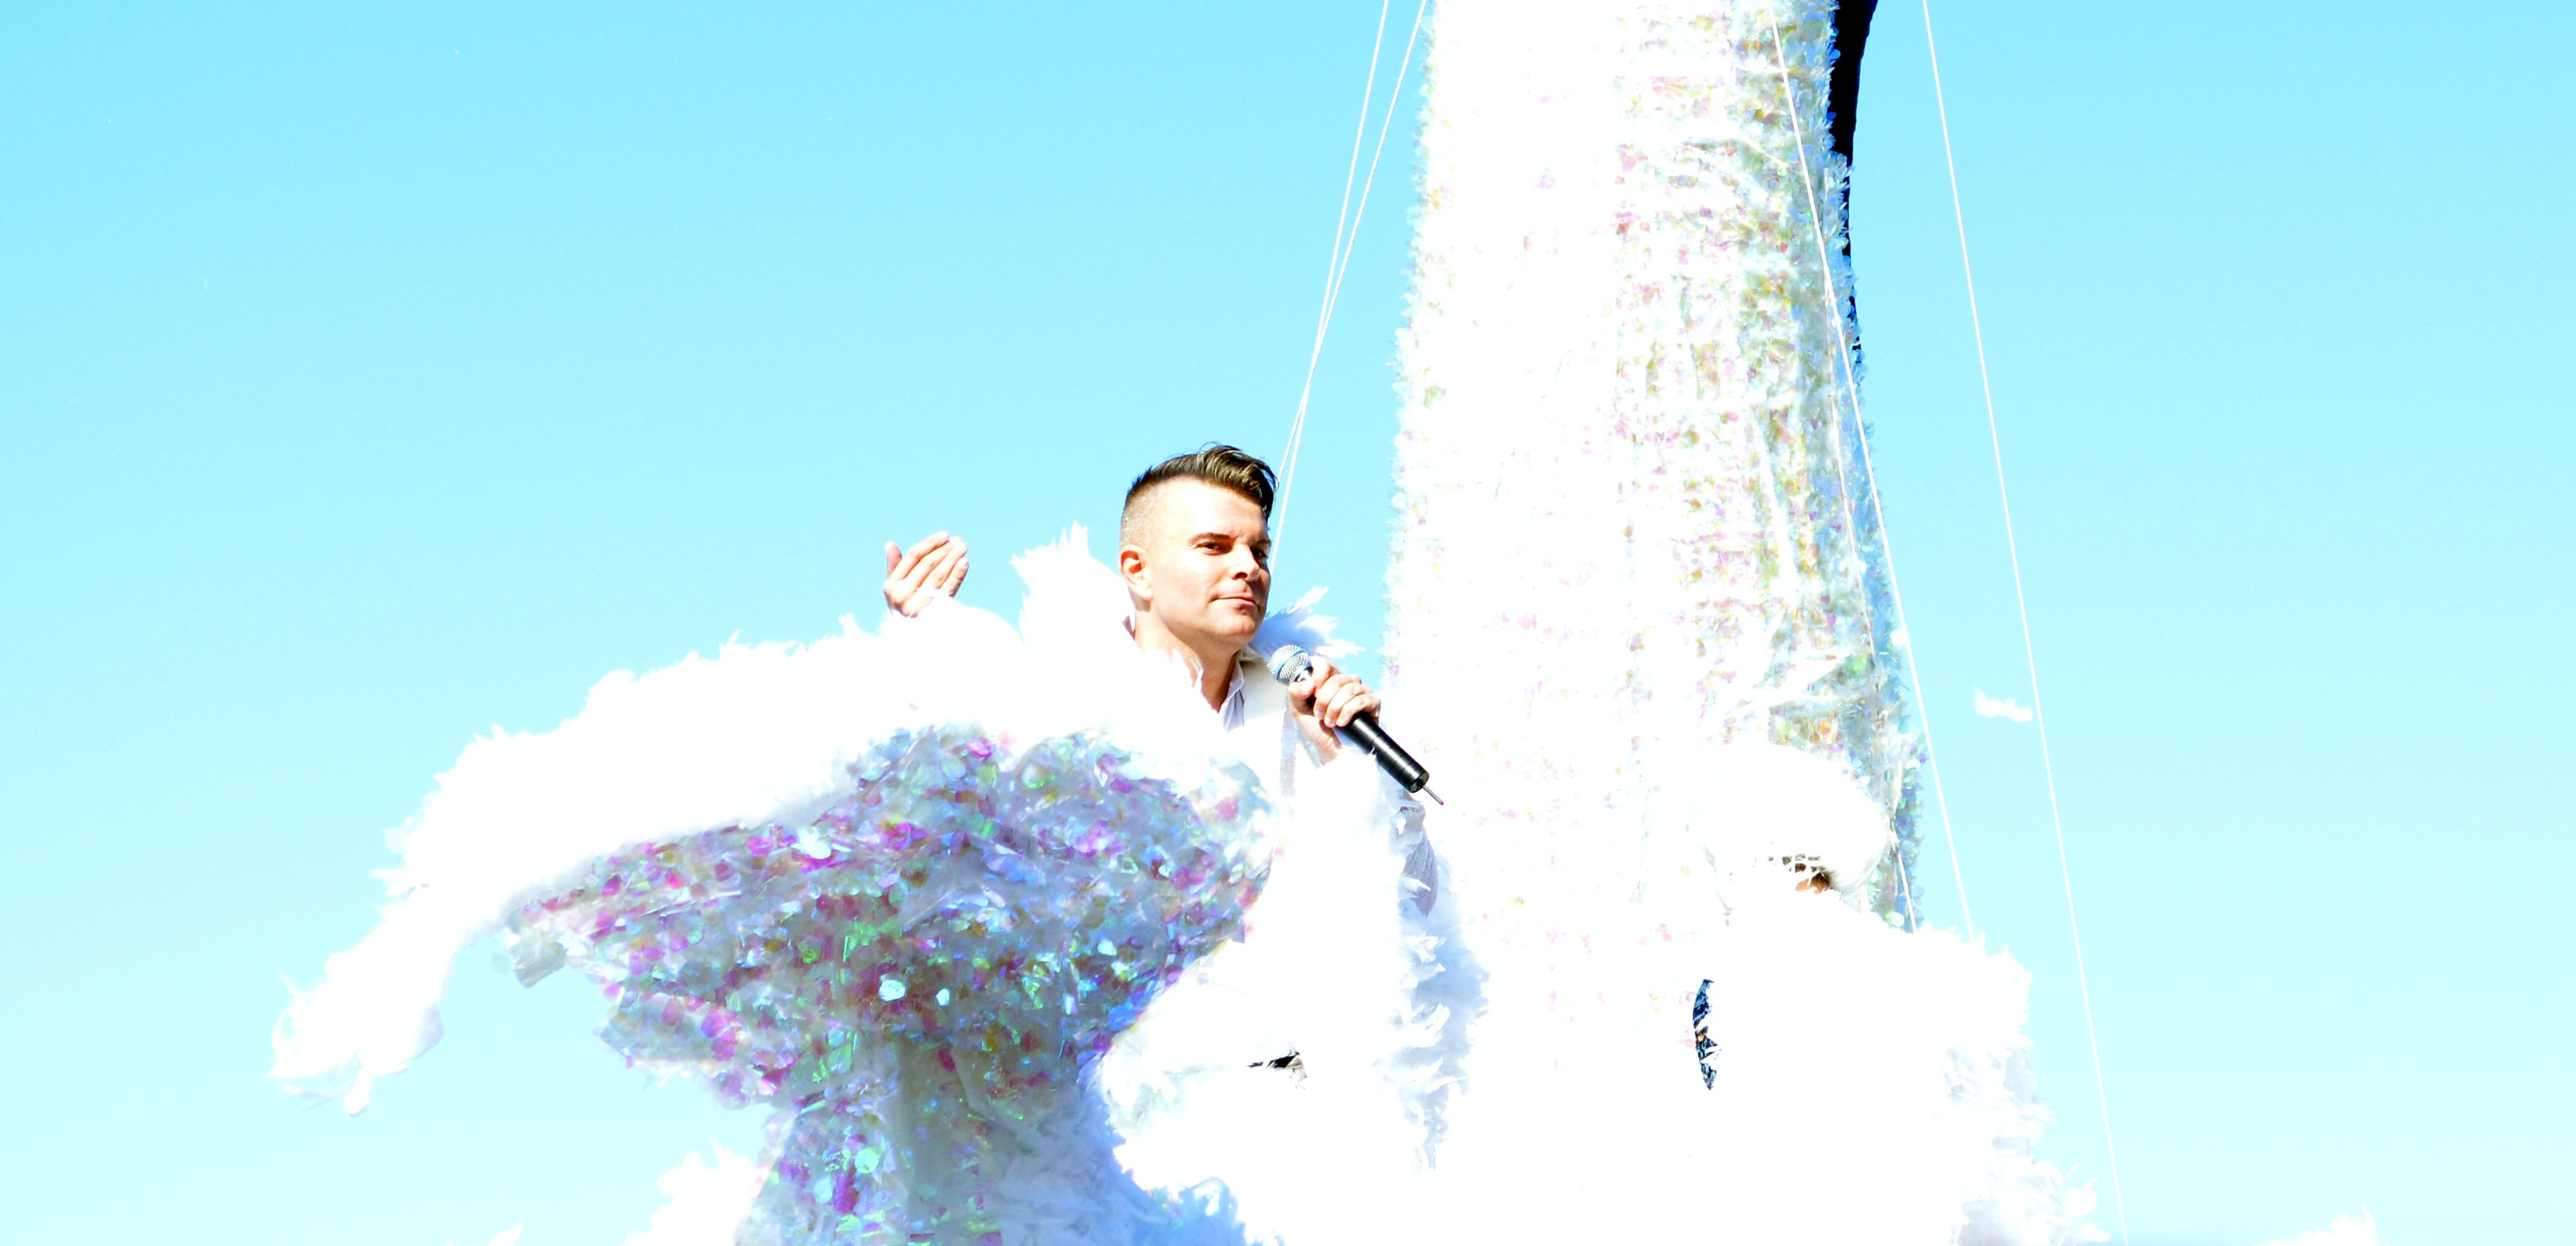 Iceland's greatest gay icon, Páll Óskar. Pictured here on an enormous glittering swan.